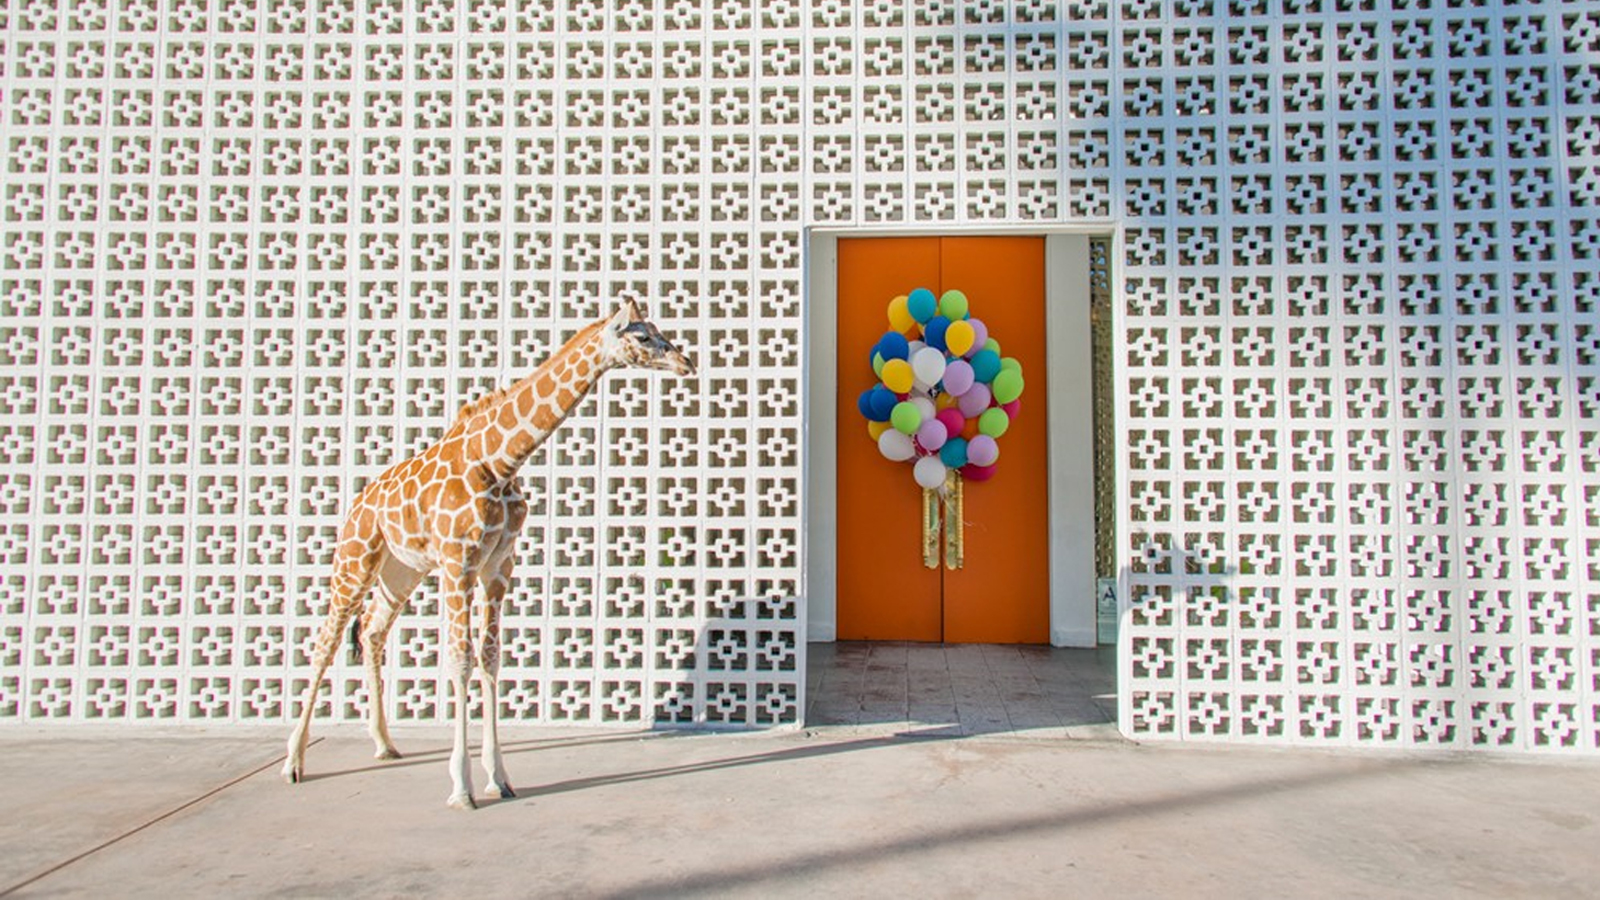 JONATHAN ADLER'S HEDONISTIC PALM SPRINGS DELIGHT